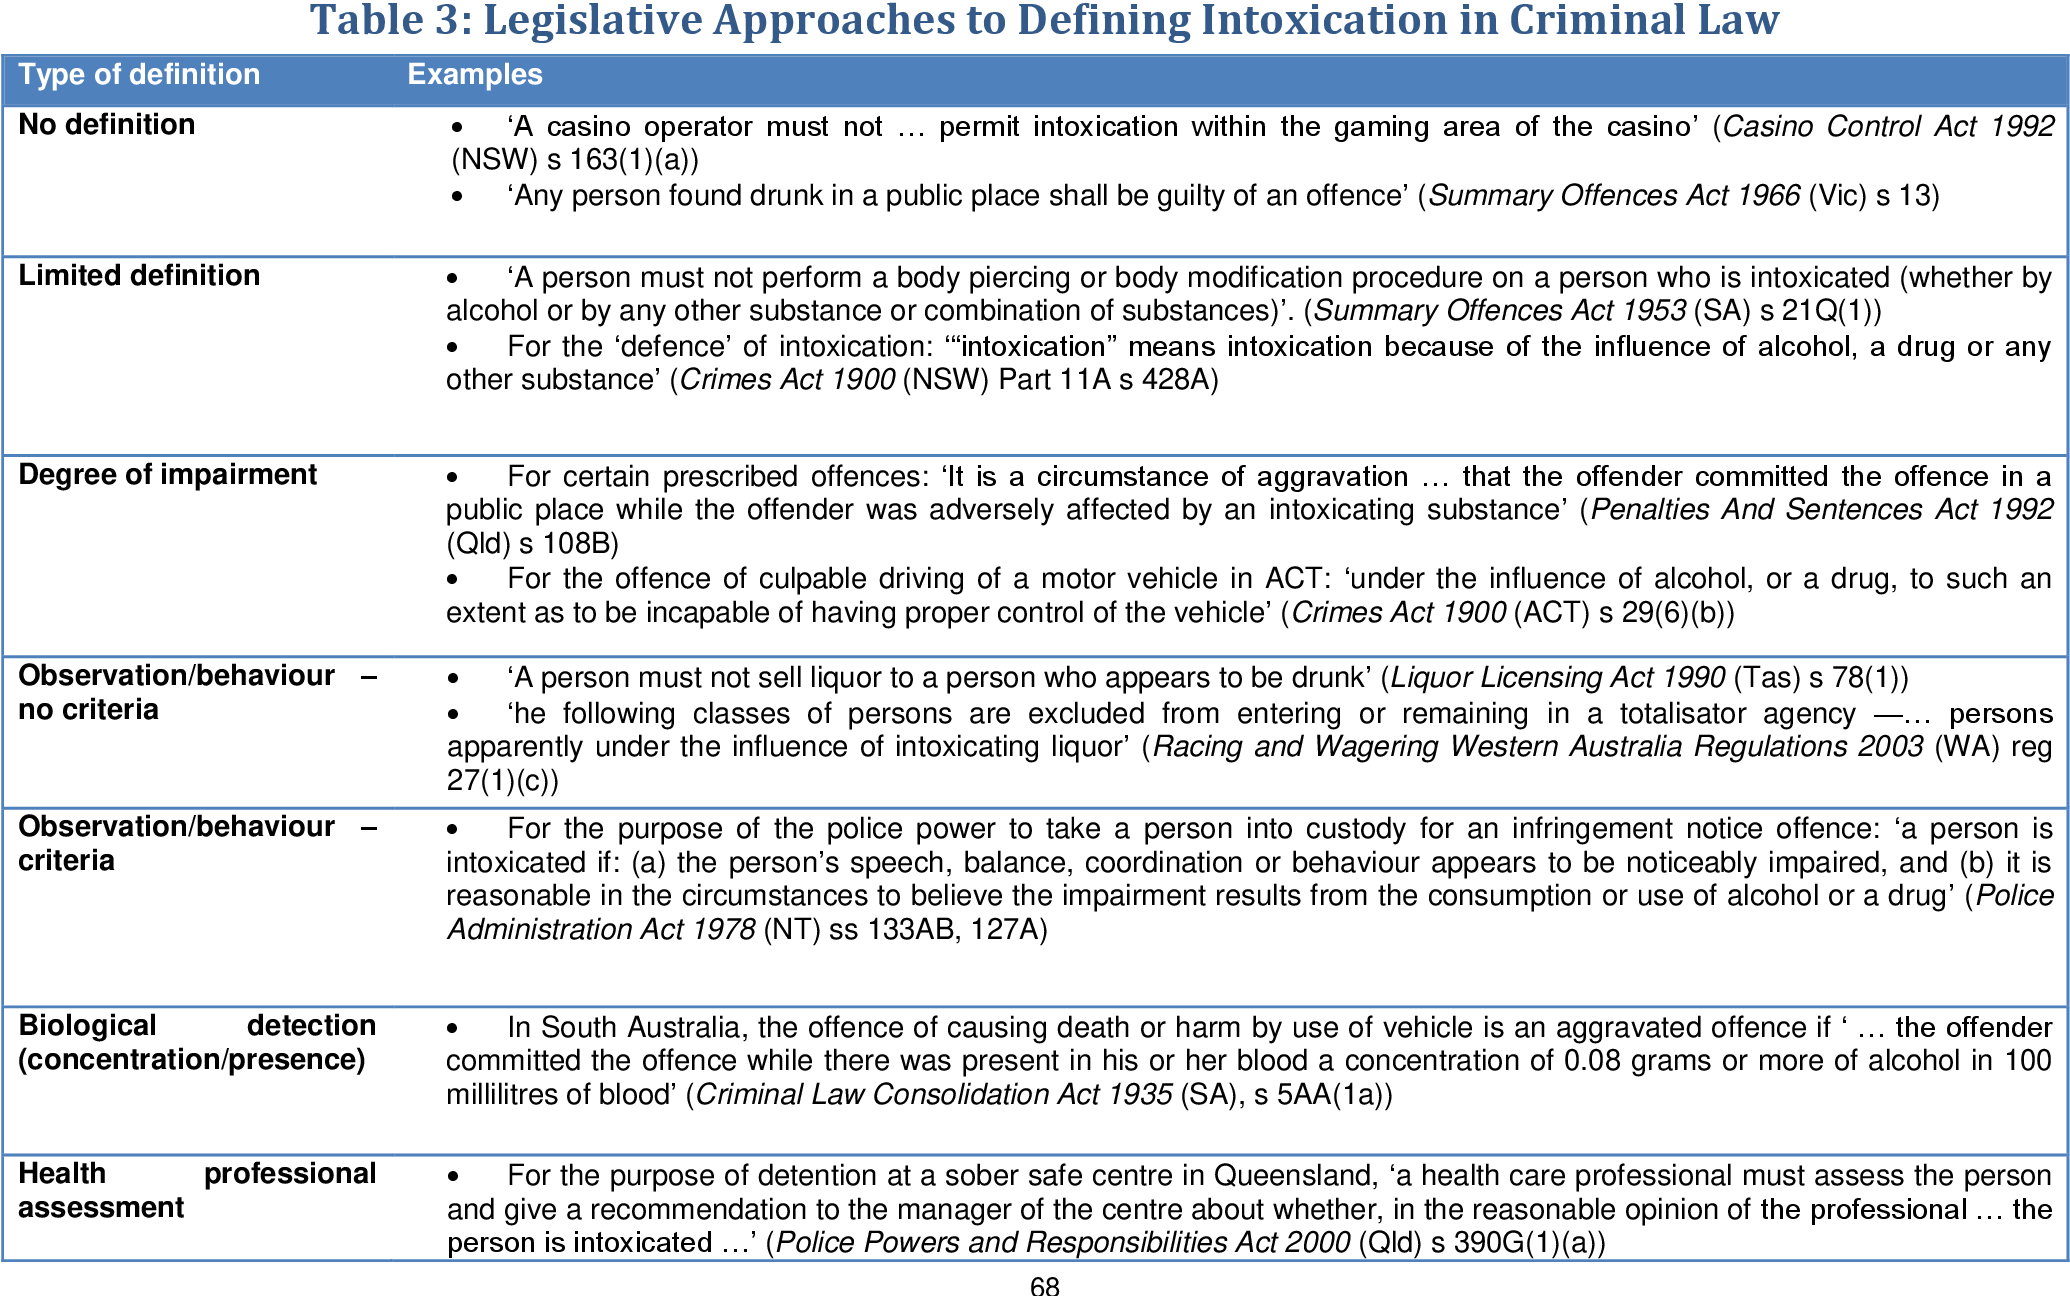 Table 1 from \'Intoxication\' and Australian Criminal Law.